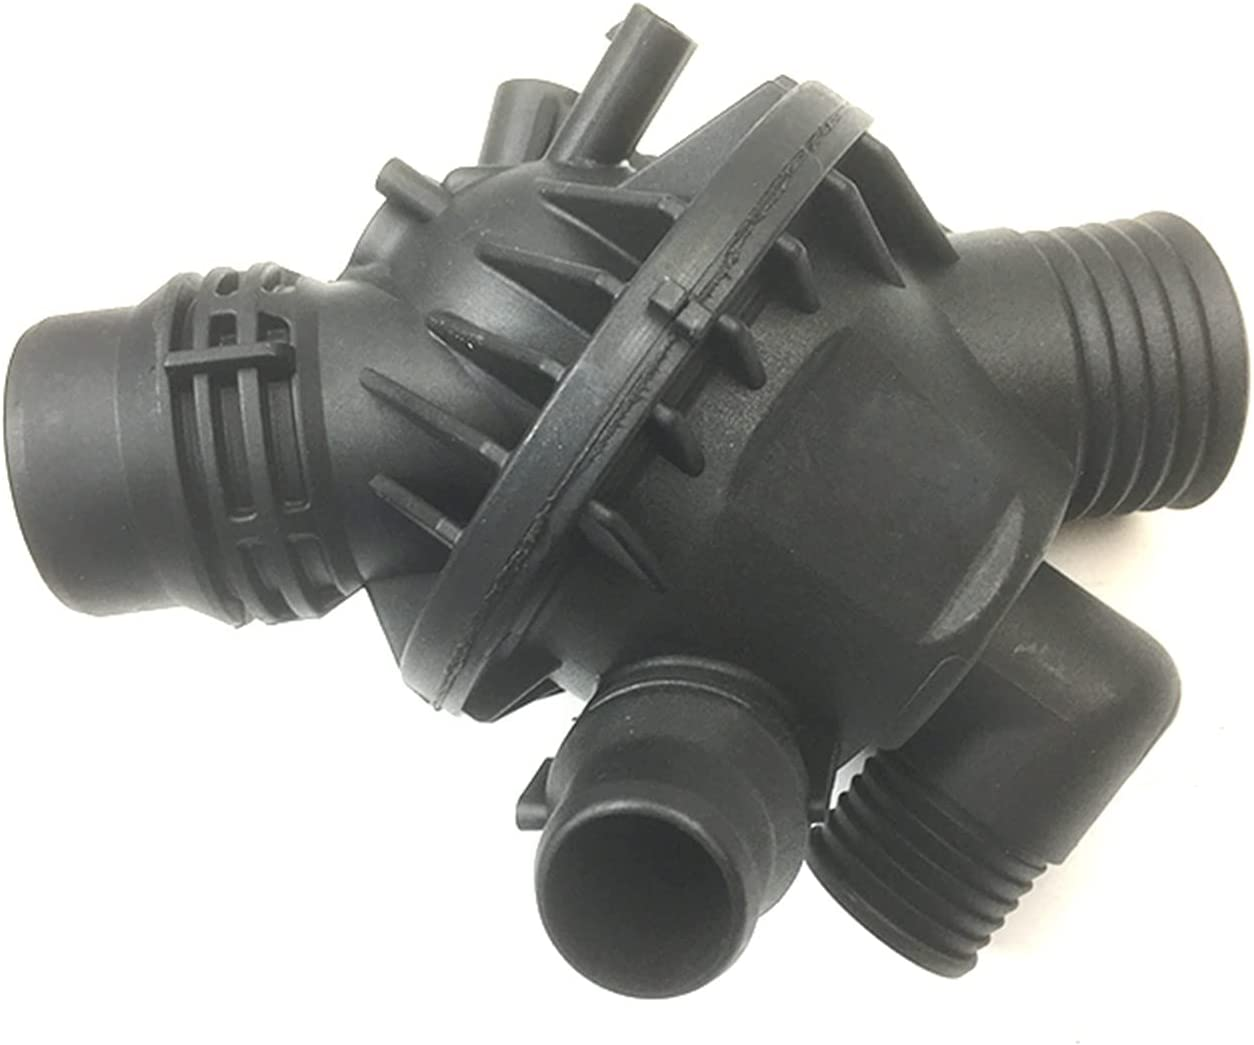 FANJUANMIN Selling 11537586784 Engine Coolant Animer and price revision Housing Compati Thermostat